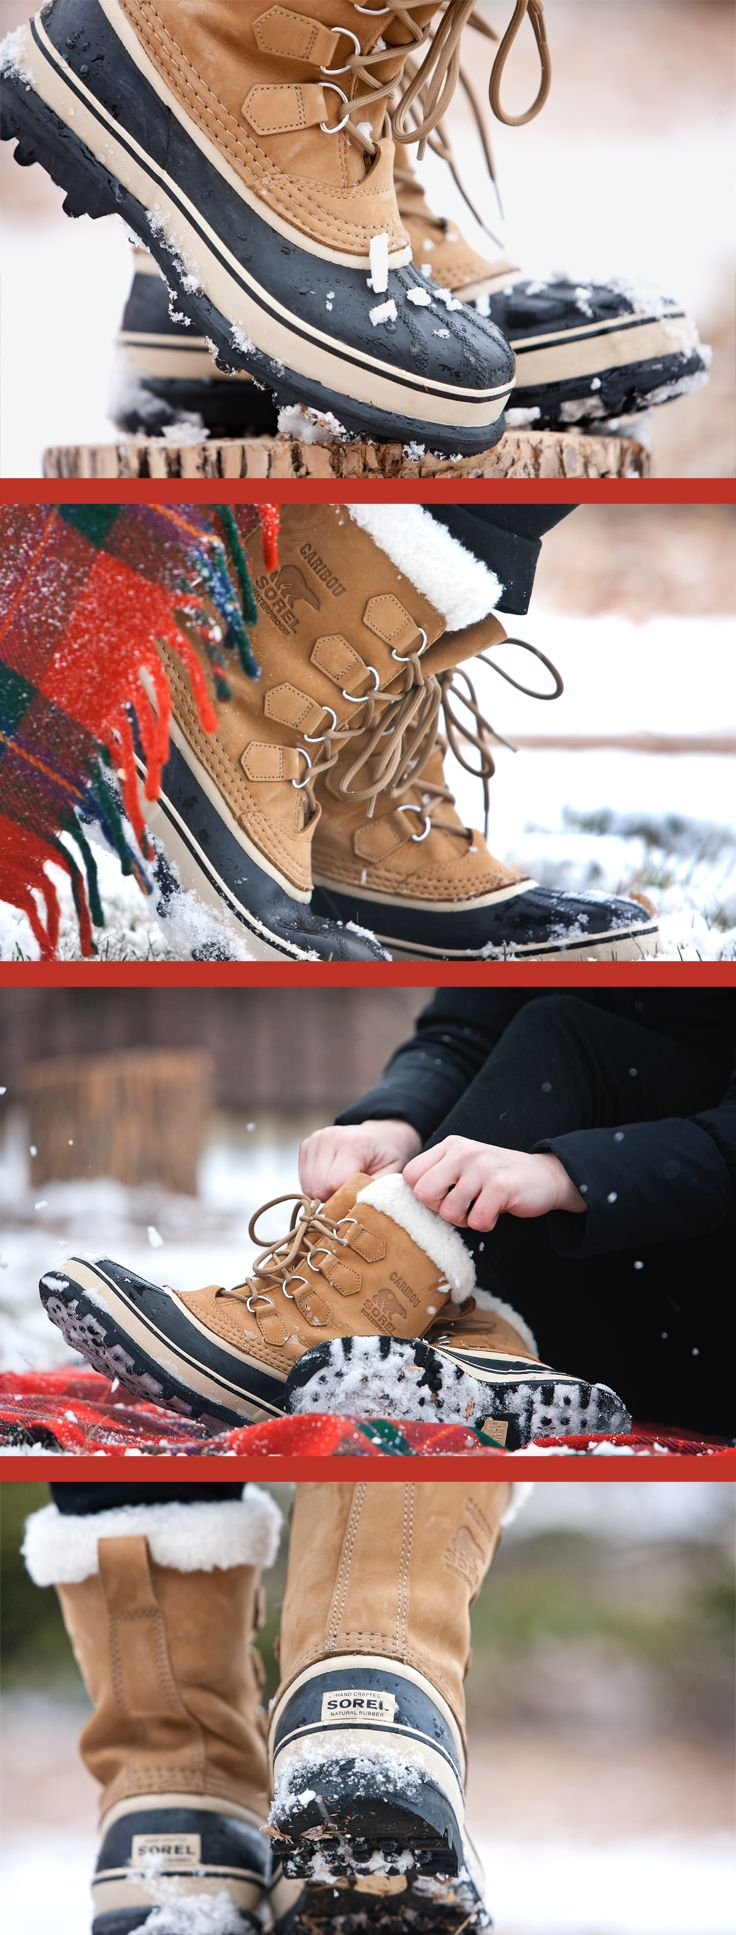 Often imitated but never equaled, the original Sorel boot features waterproof construction, seam-sealing and a removable ThermoPlus™ felt inner boot for warmth, comfort and protection in cold and wet winter weather.